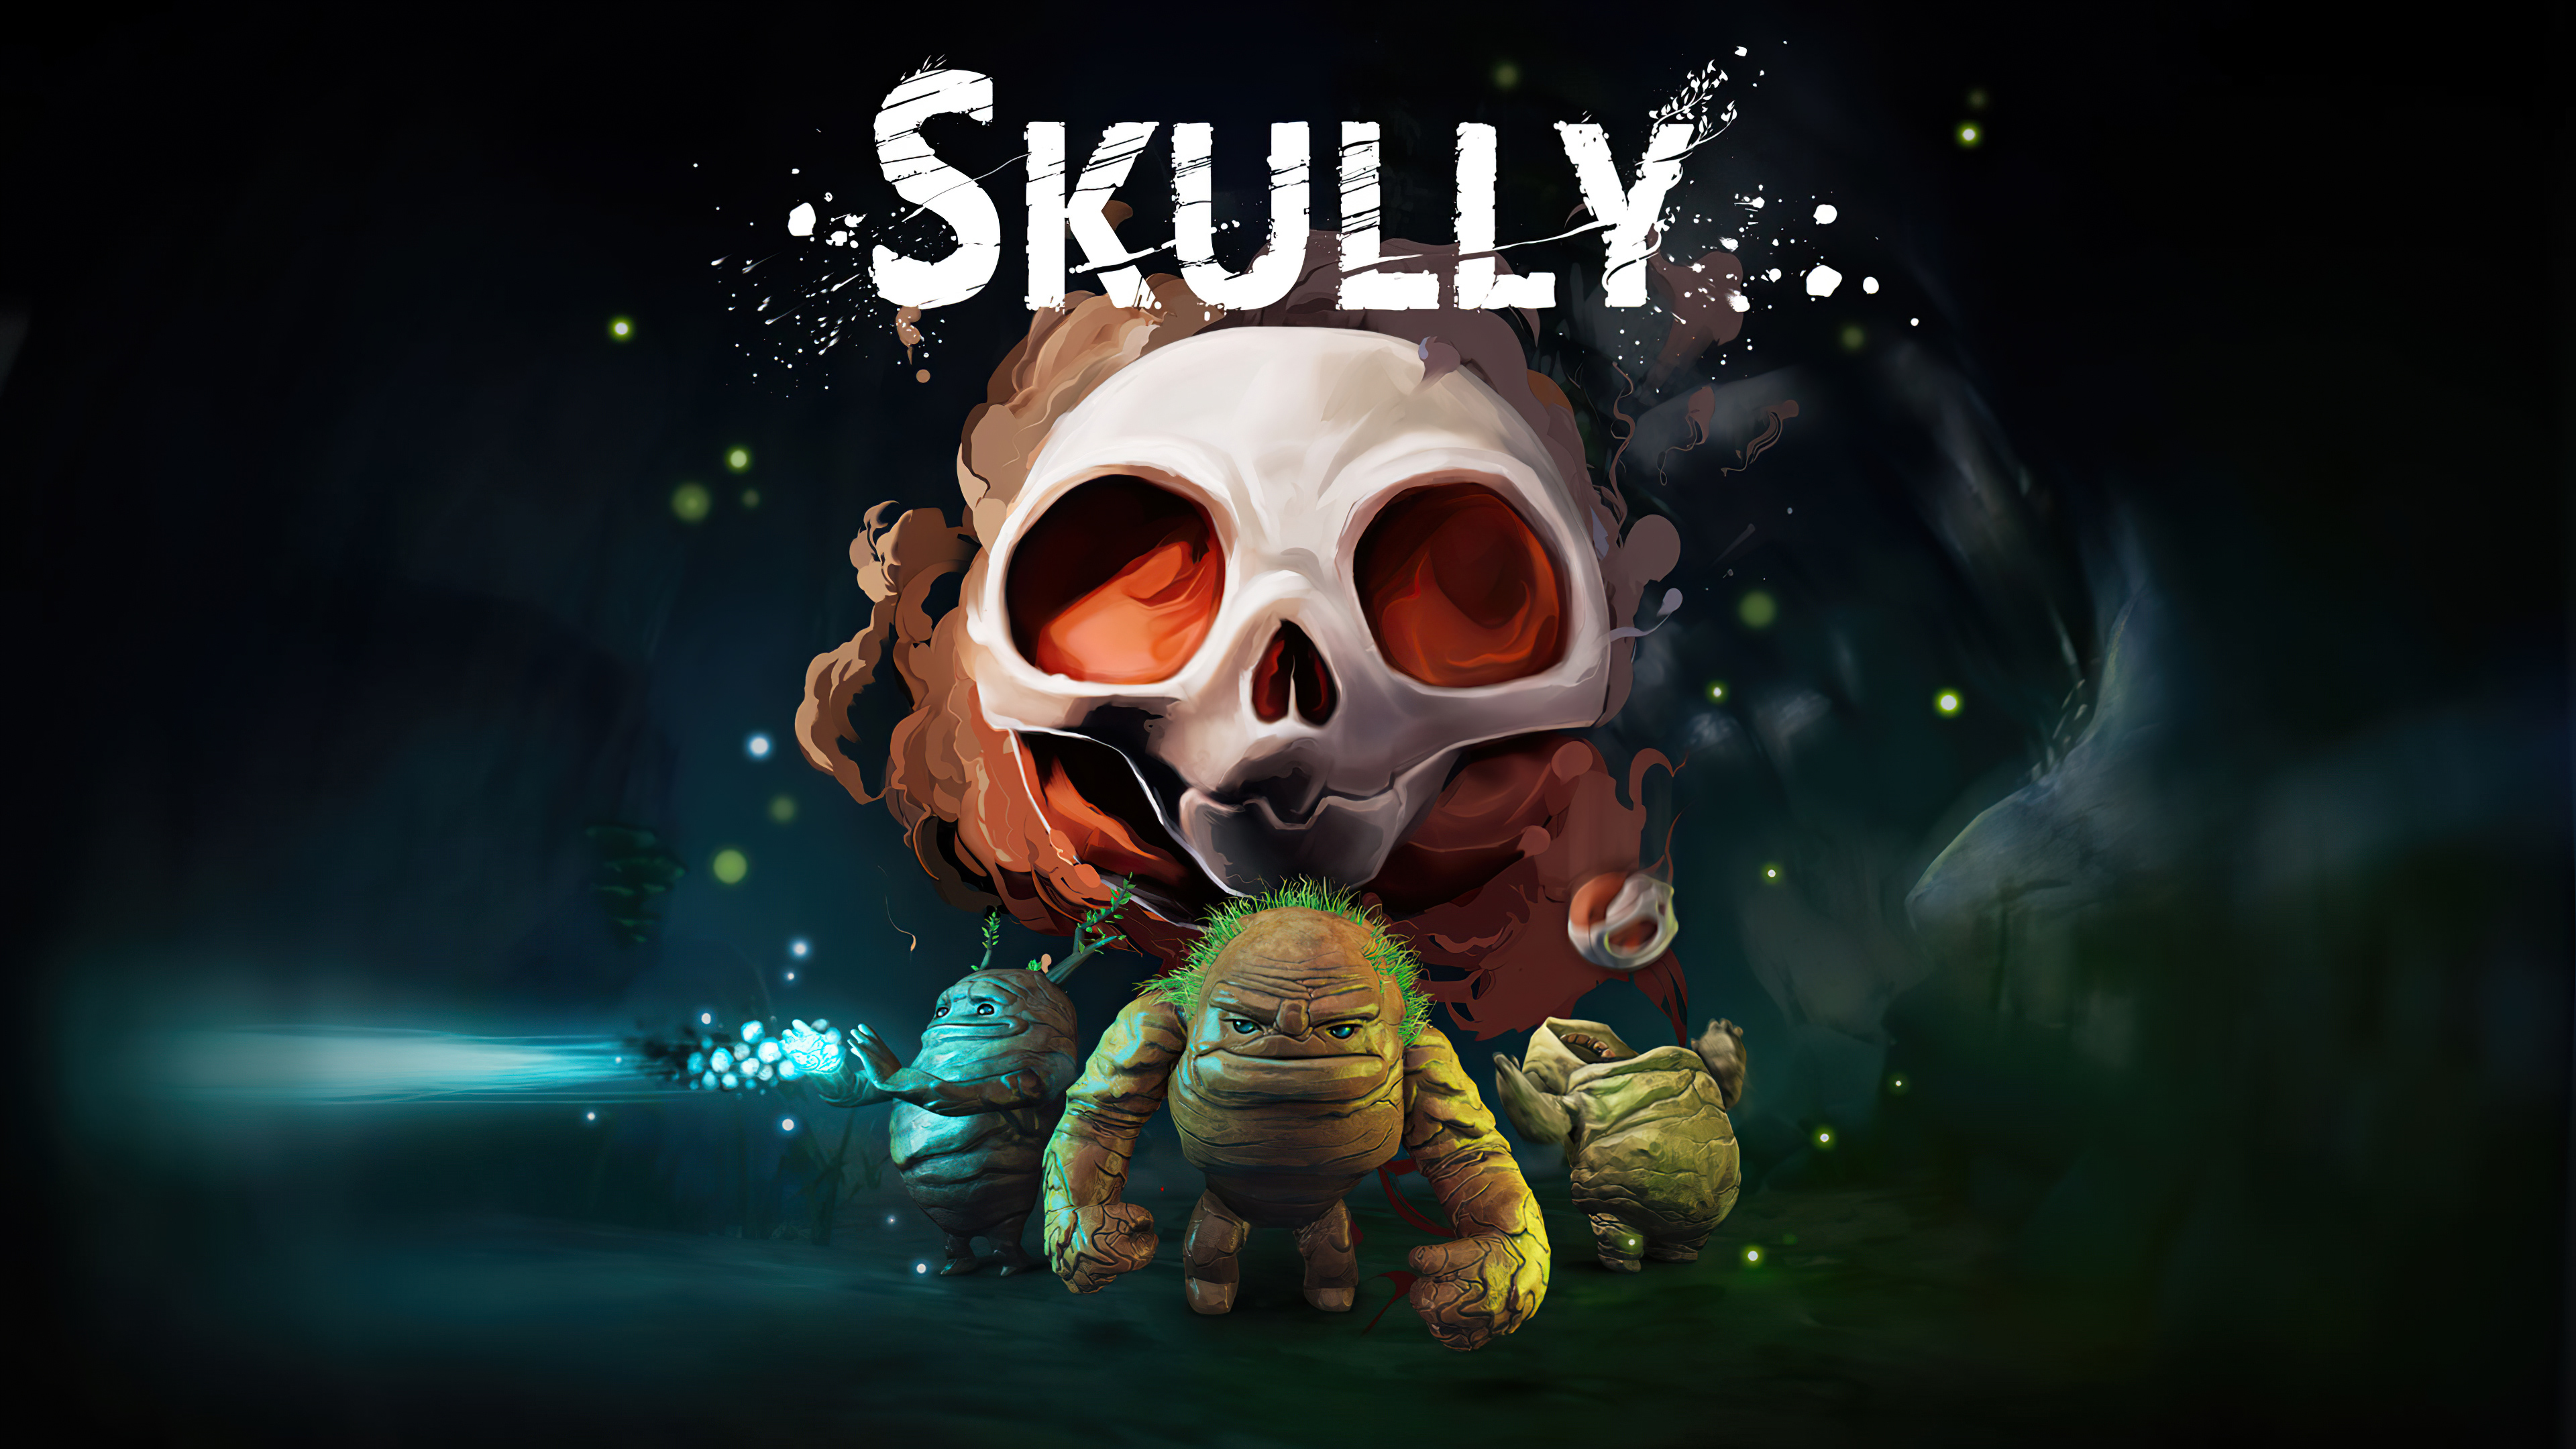 Skully Ps4 Game Hd Games 4k Wallpapers Images Backgrounds Photos And Pictures